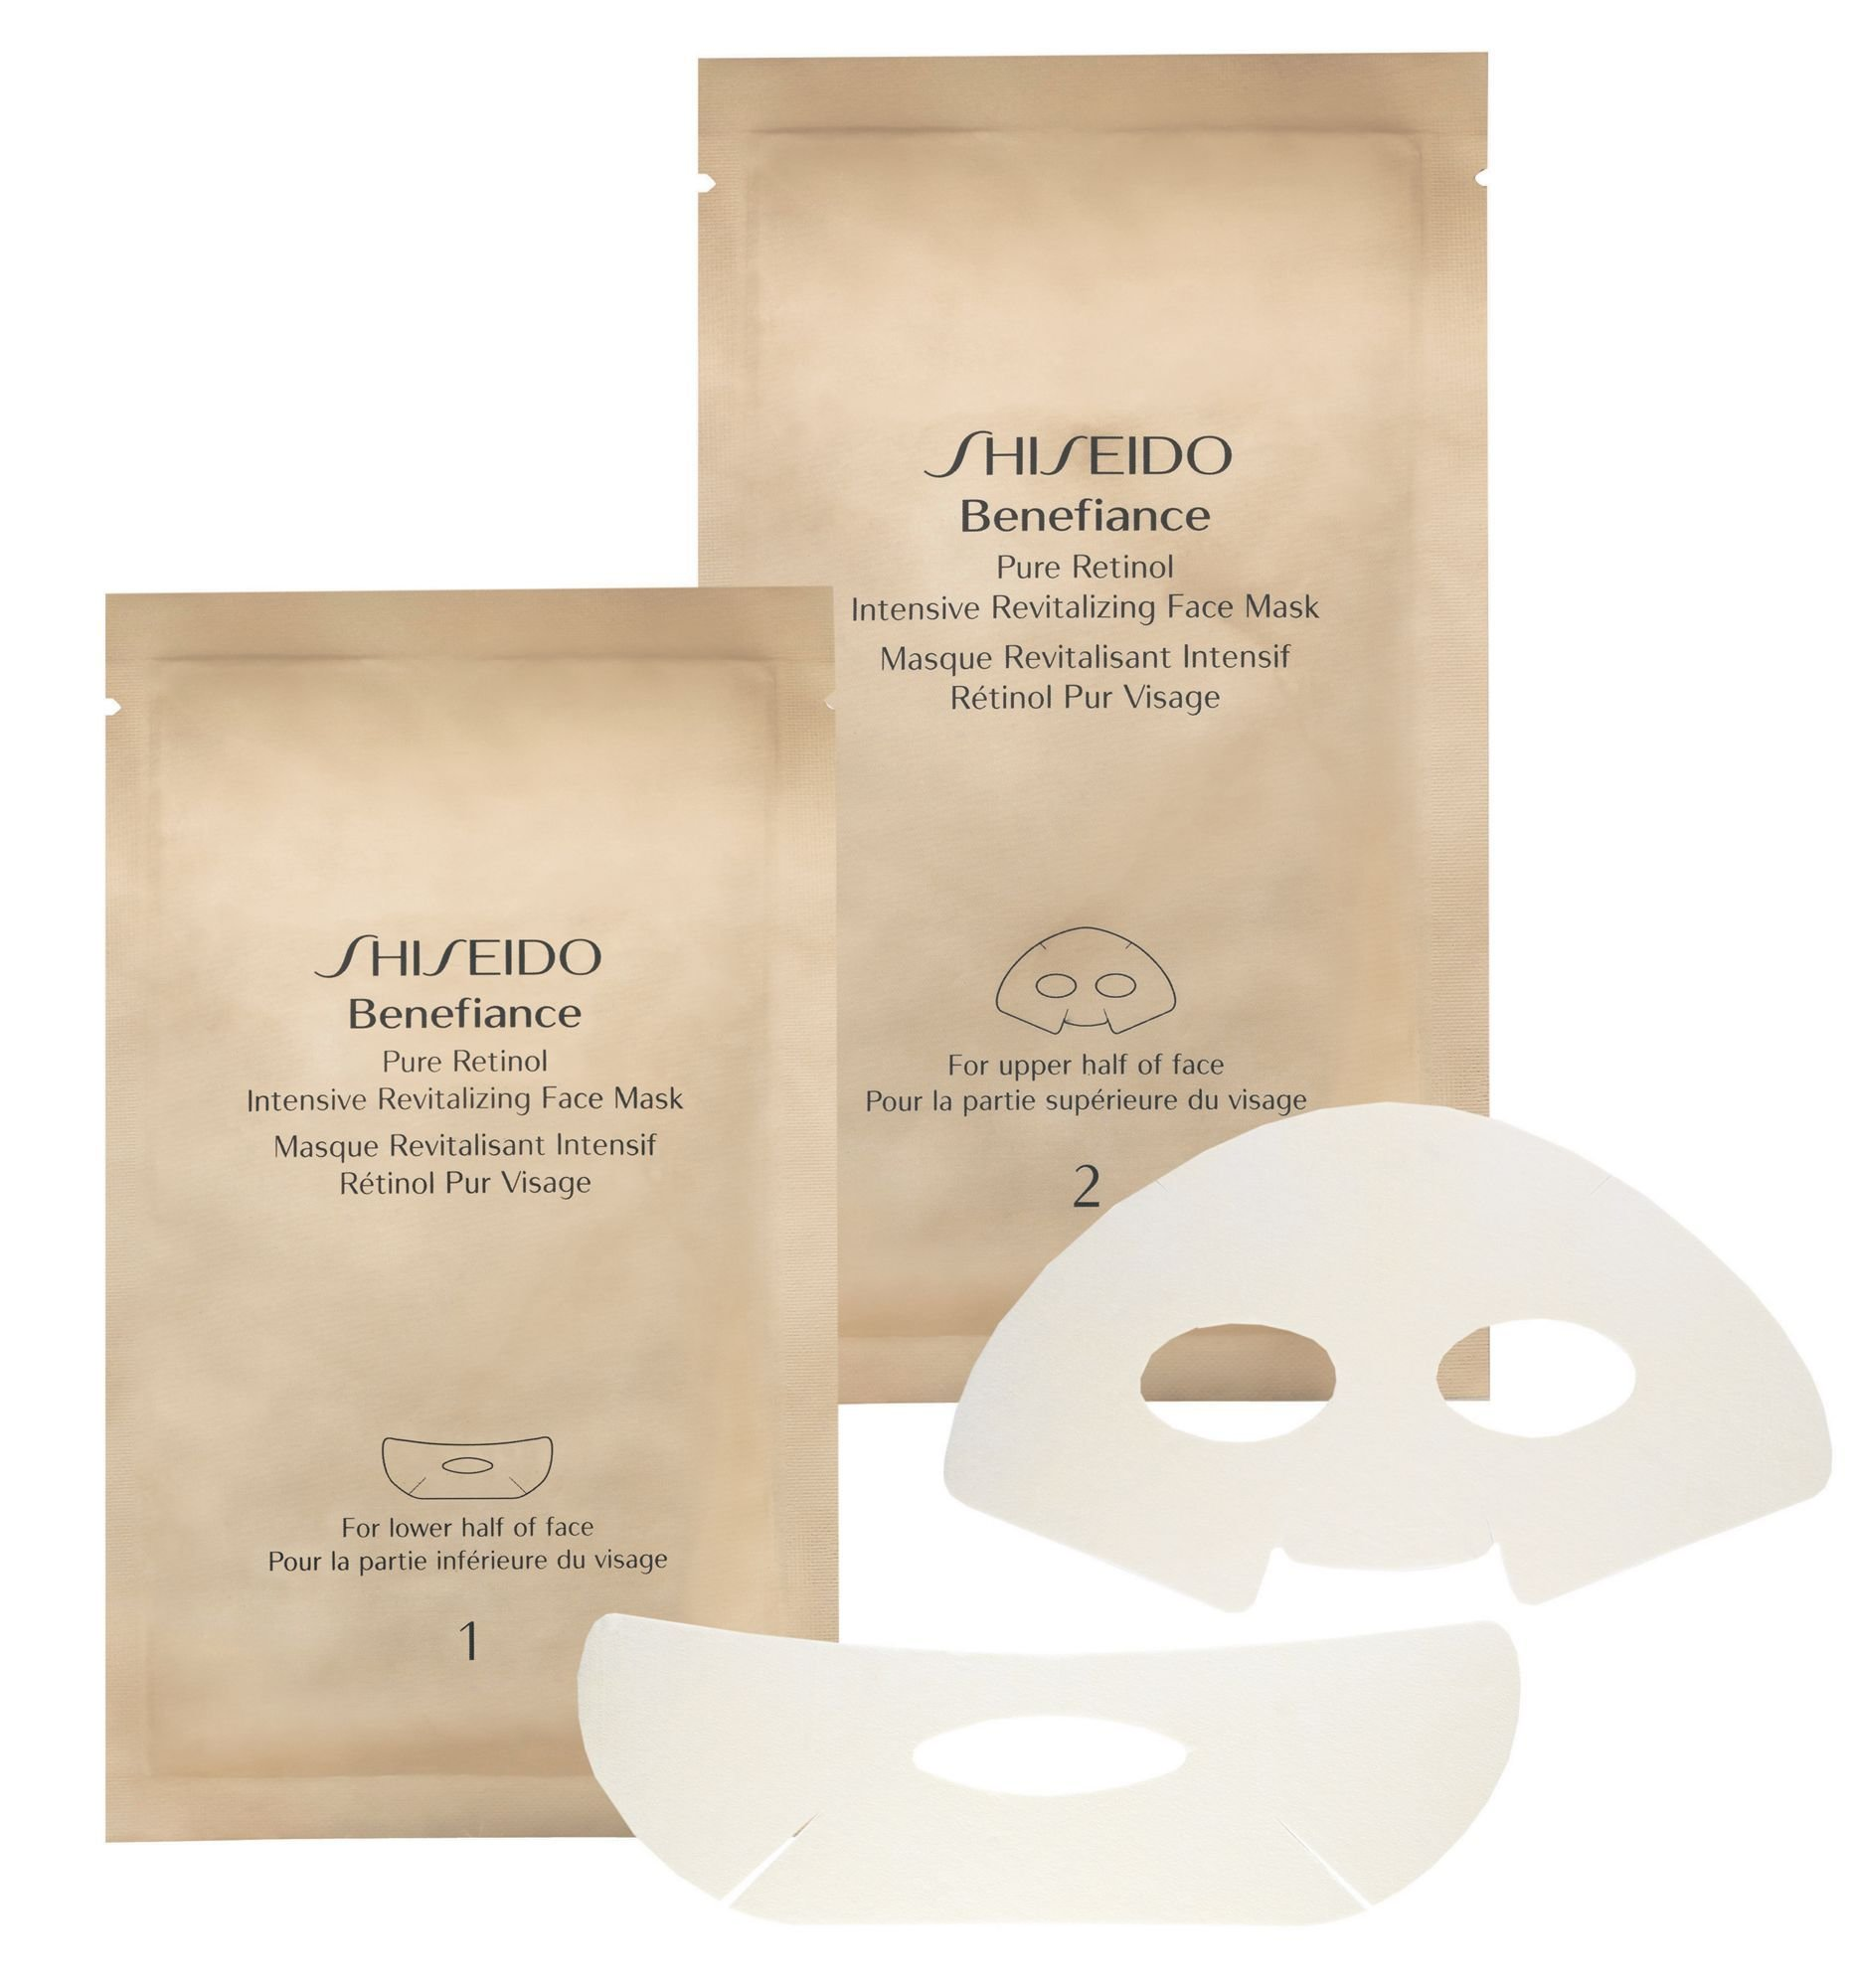 Shiseido Benefiance Face Mask 4ml